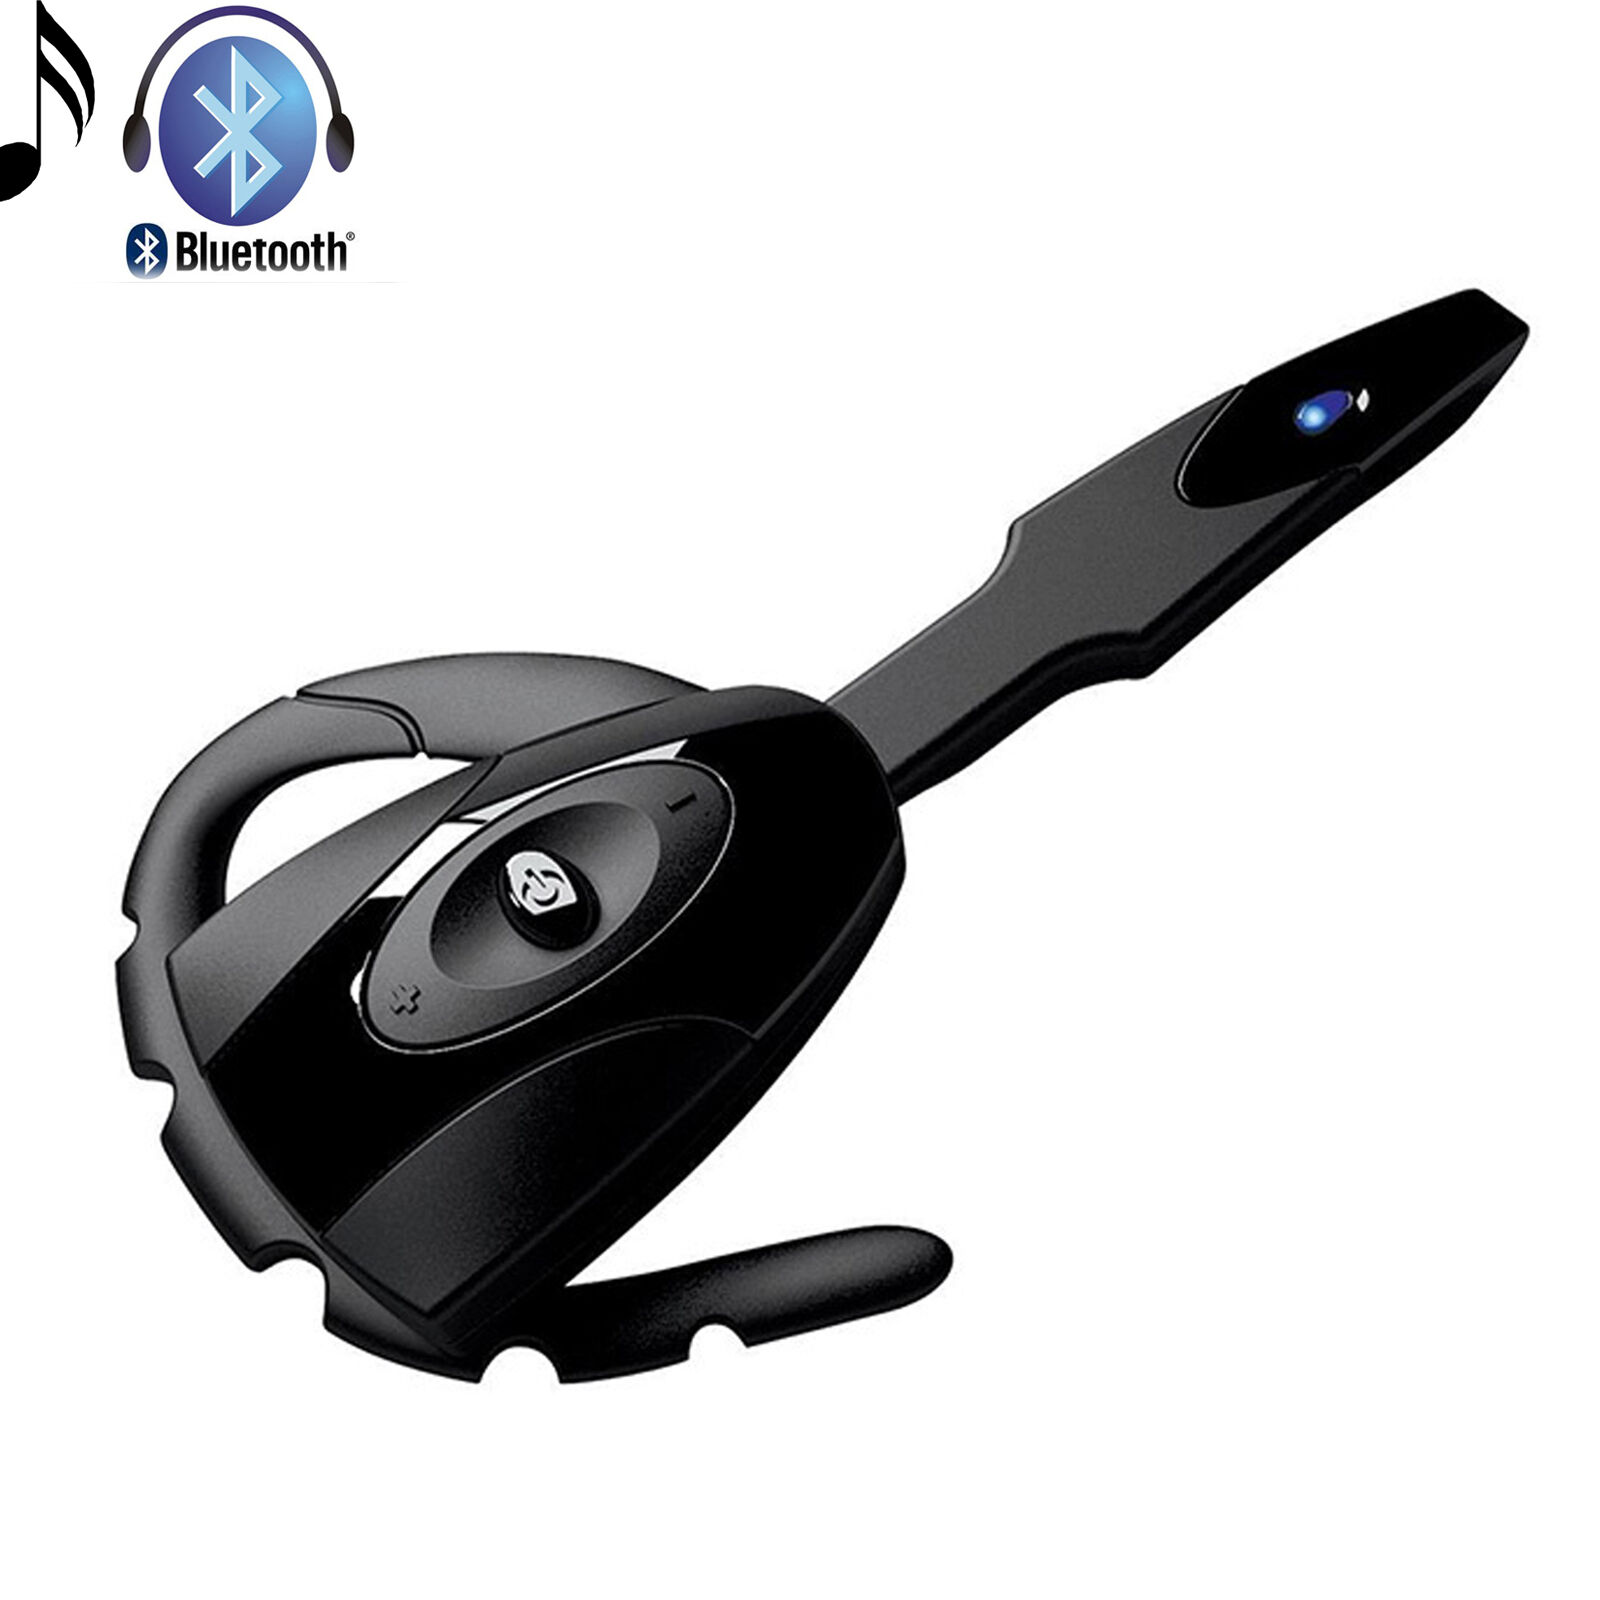 Wireless Stereo Bluetooth Earphone Headset For Ios Android Cell Phone Pc Tablet For Sale Online